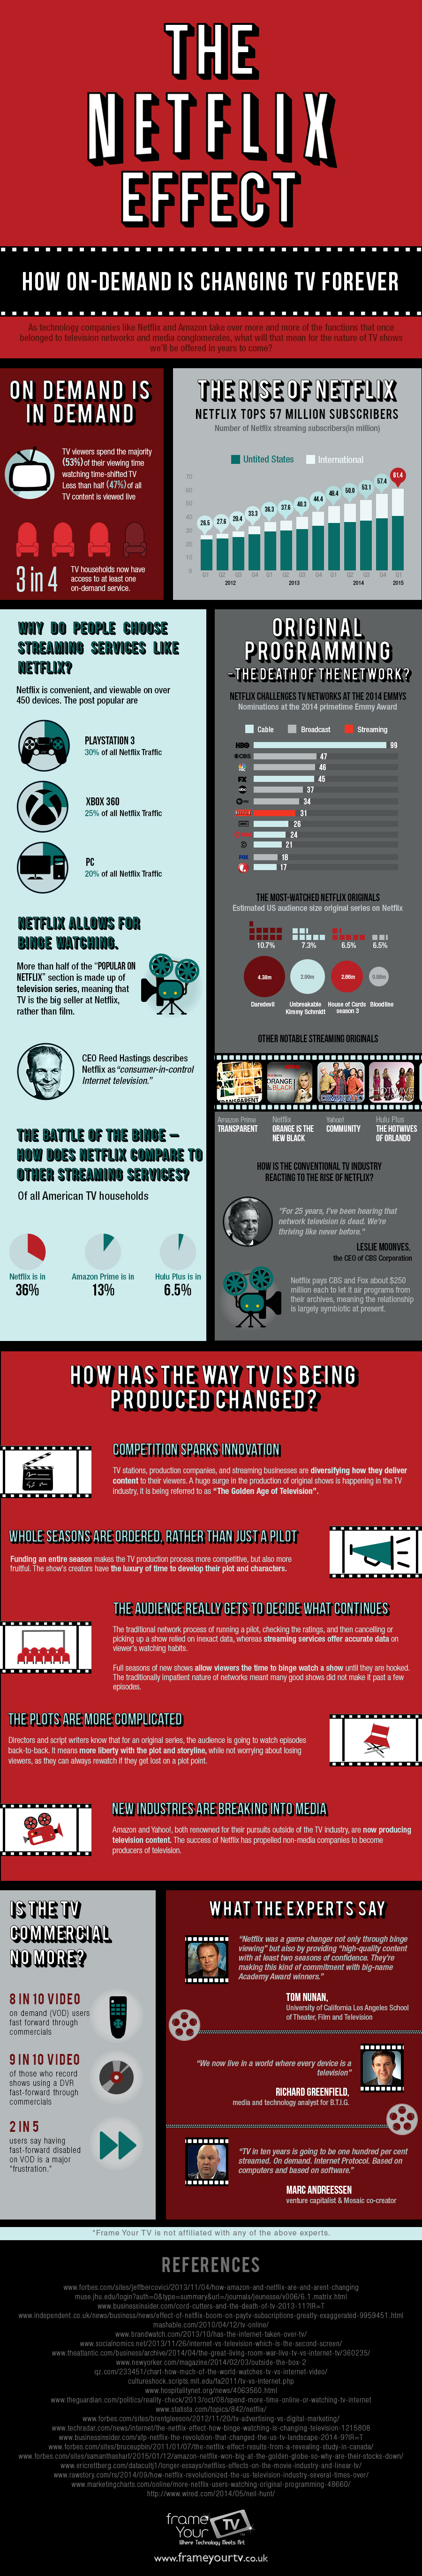 Netflix-Effect-Frame-Your-TV-Infographic